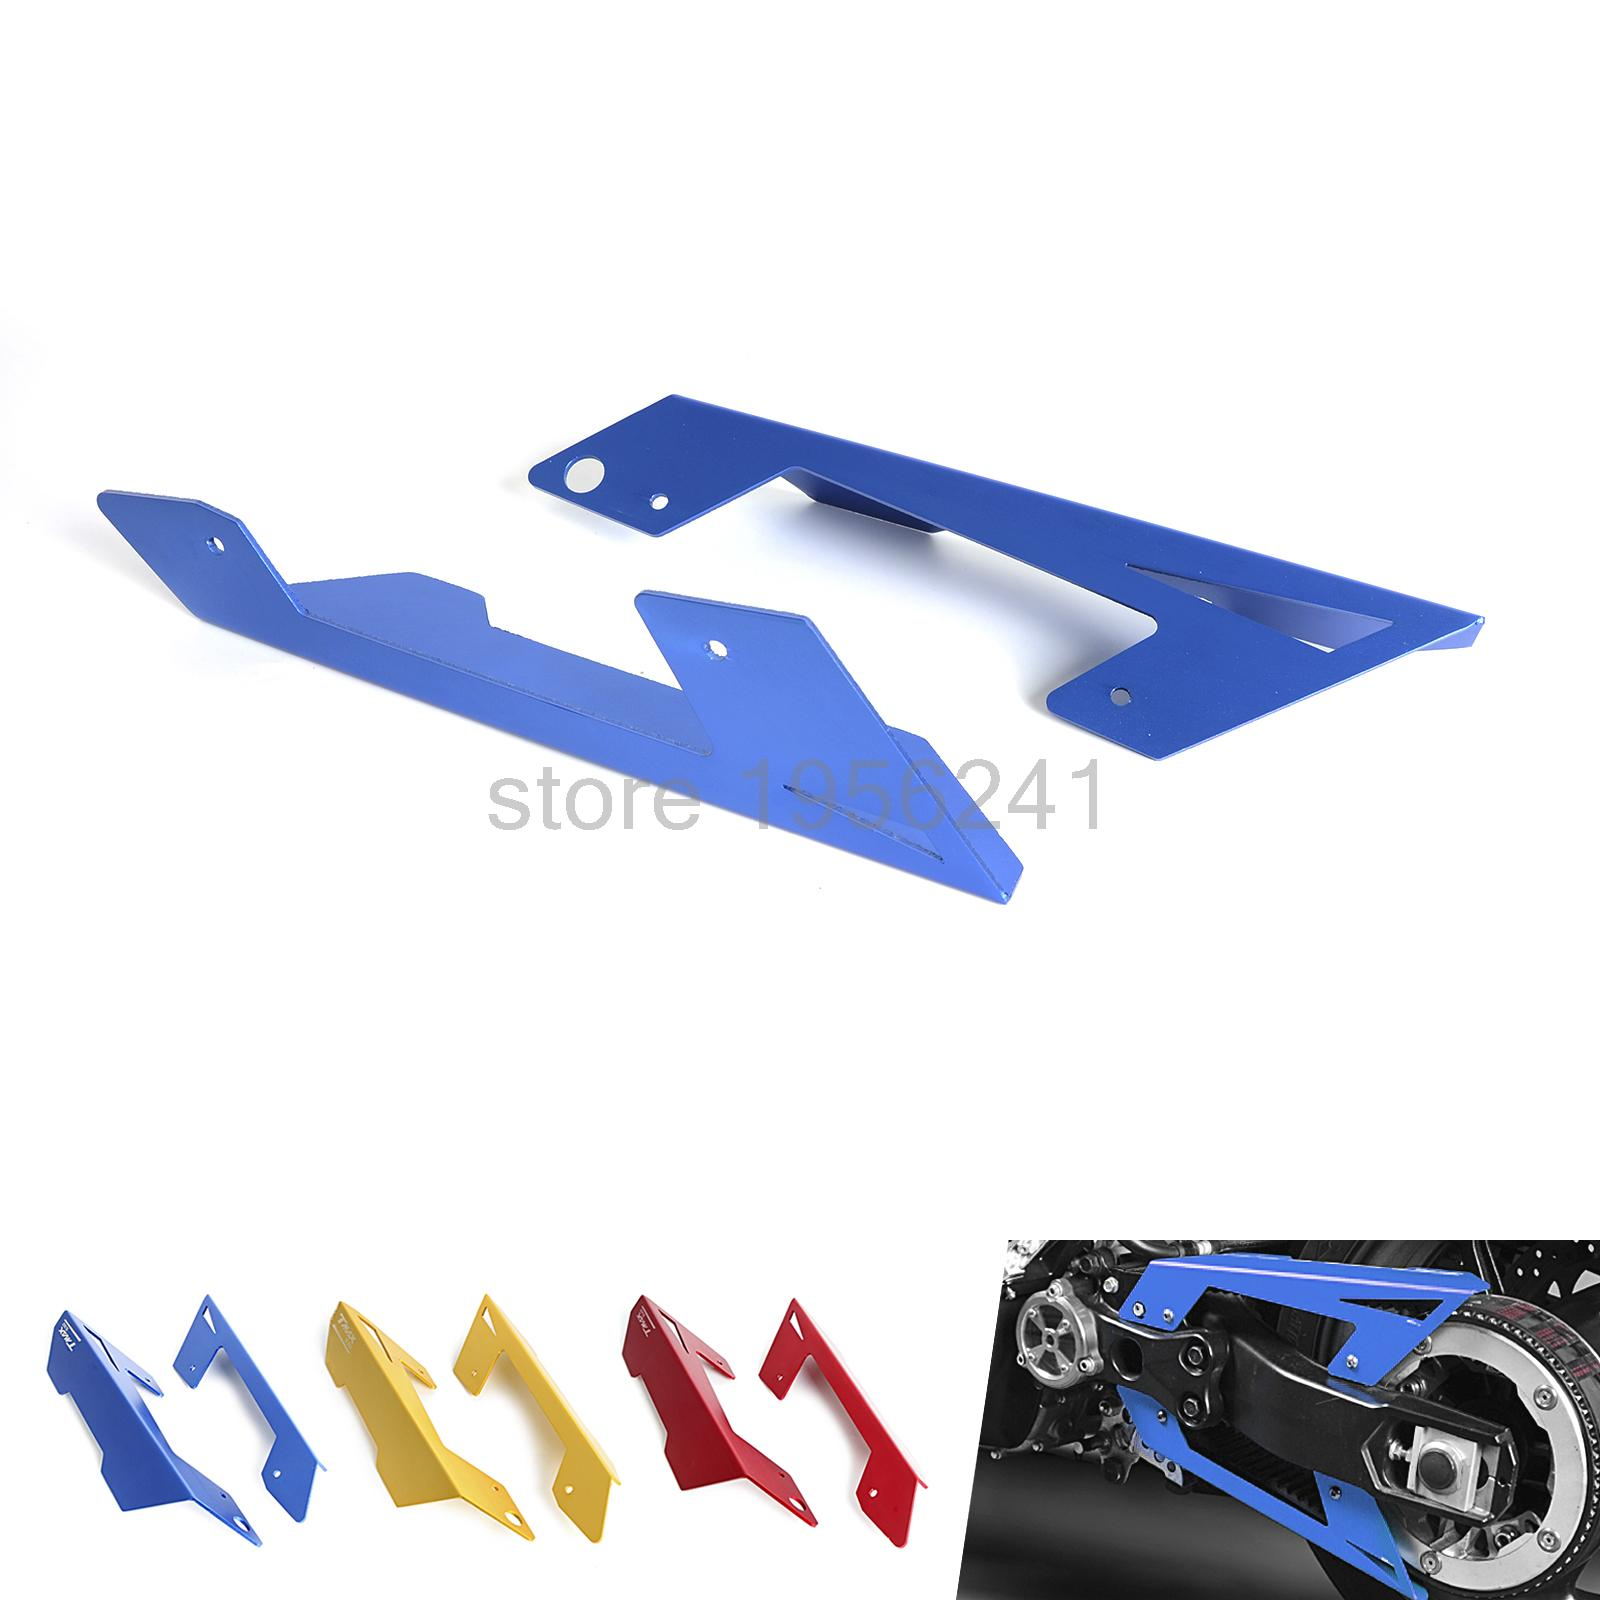 ФОТО Anodized Chain Protector Guard Cover Aluminum For YAMAHA TMAX530  2012-2015